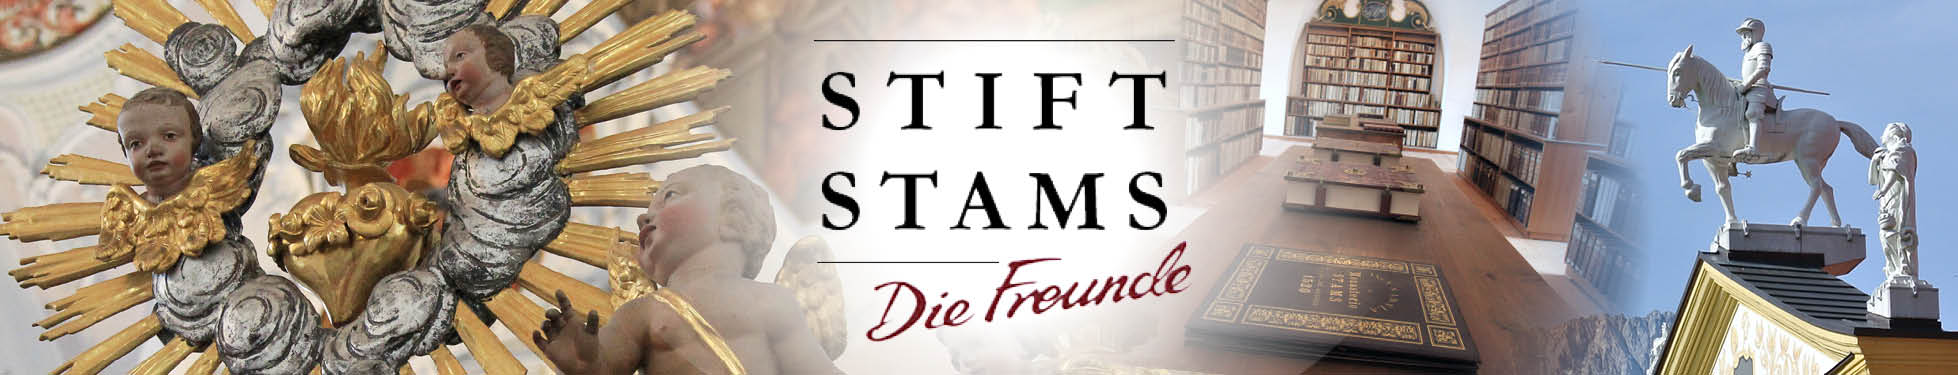 Freundeskreis Stift Stams